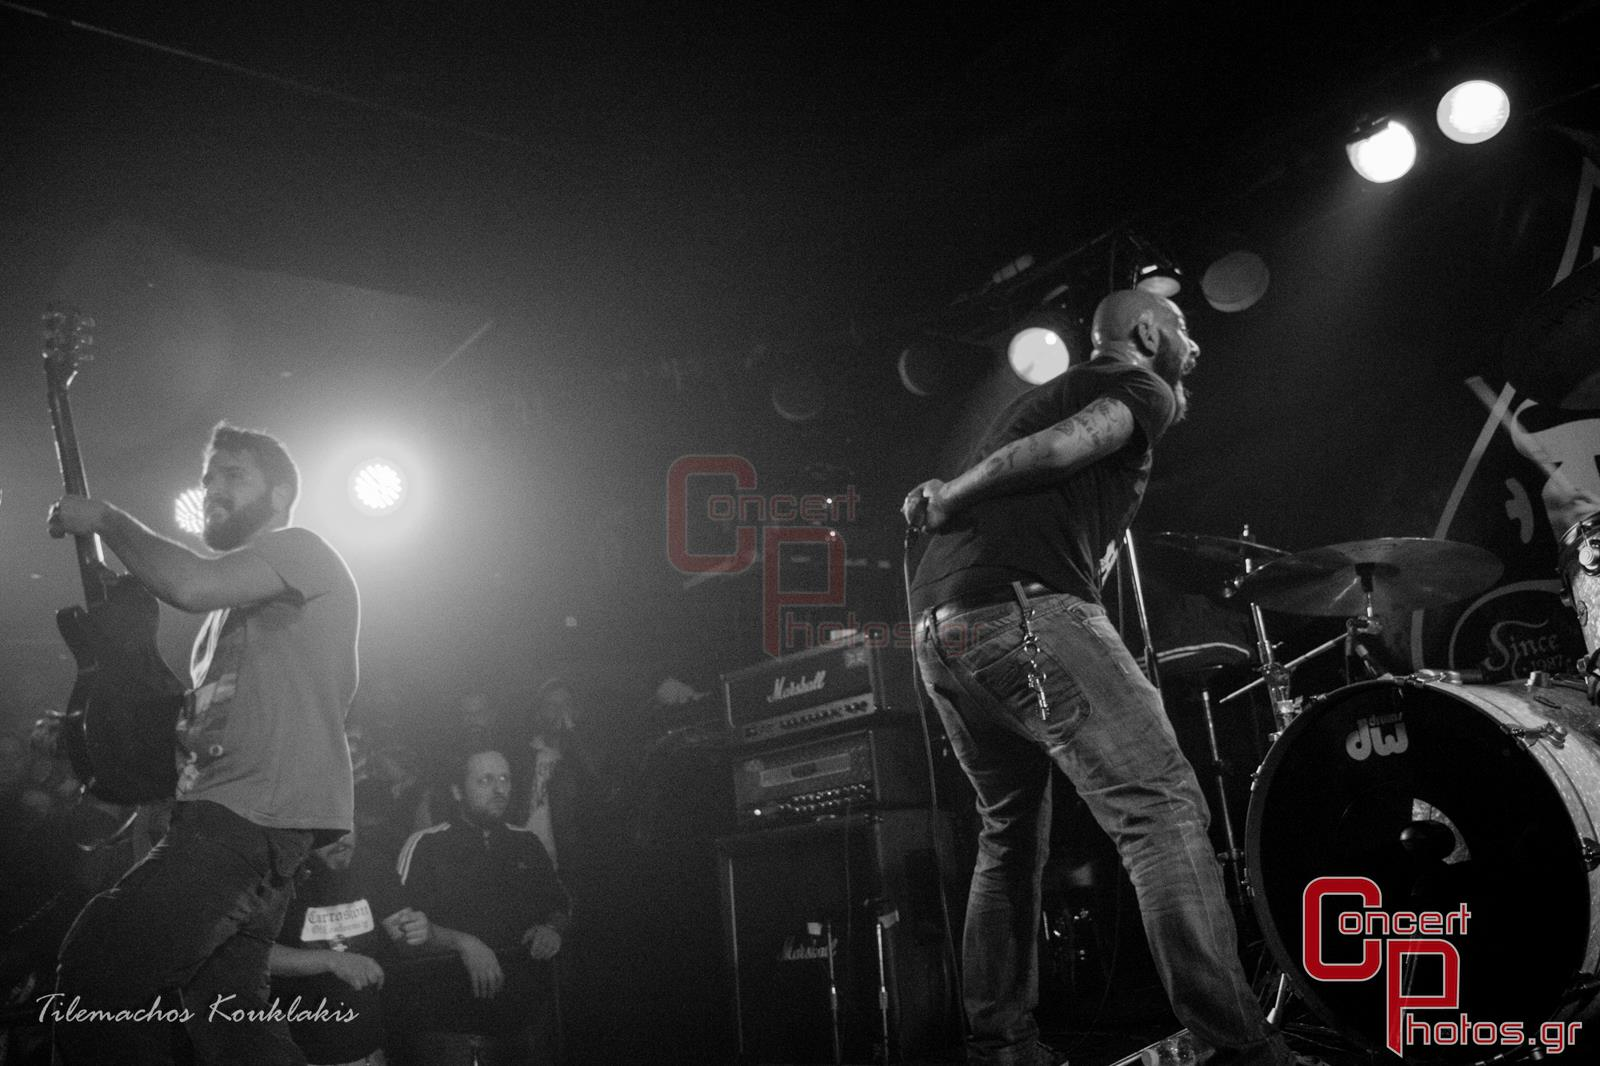 Nightstalker-Nightstalker AN Club photographer:  - concertphotos_-10